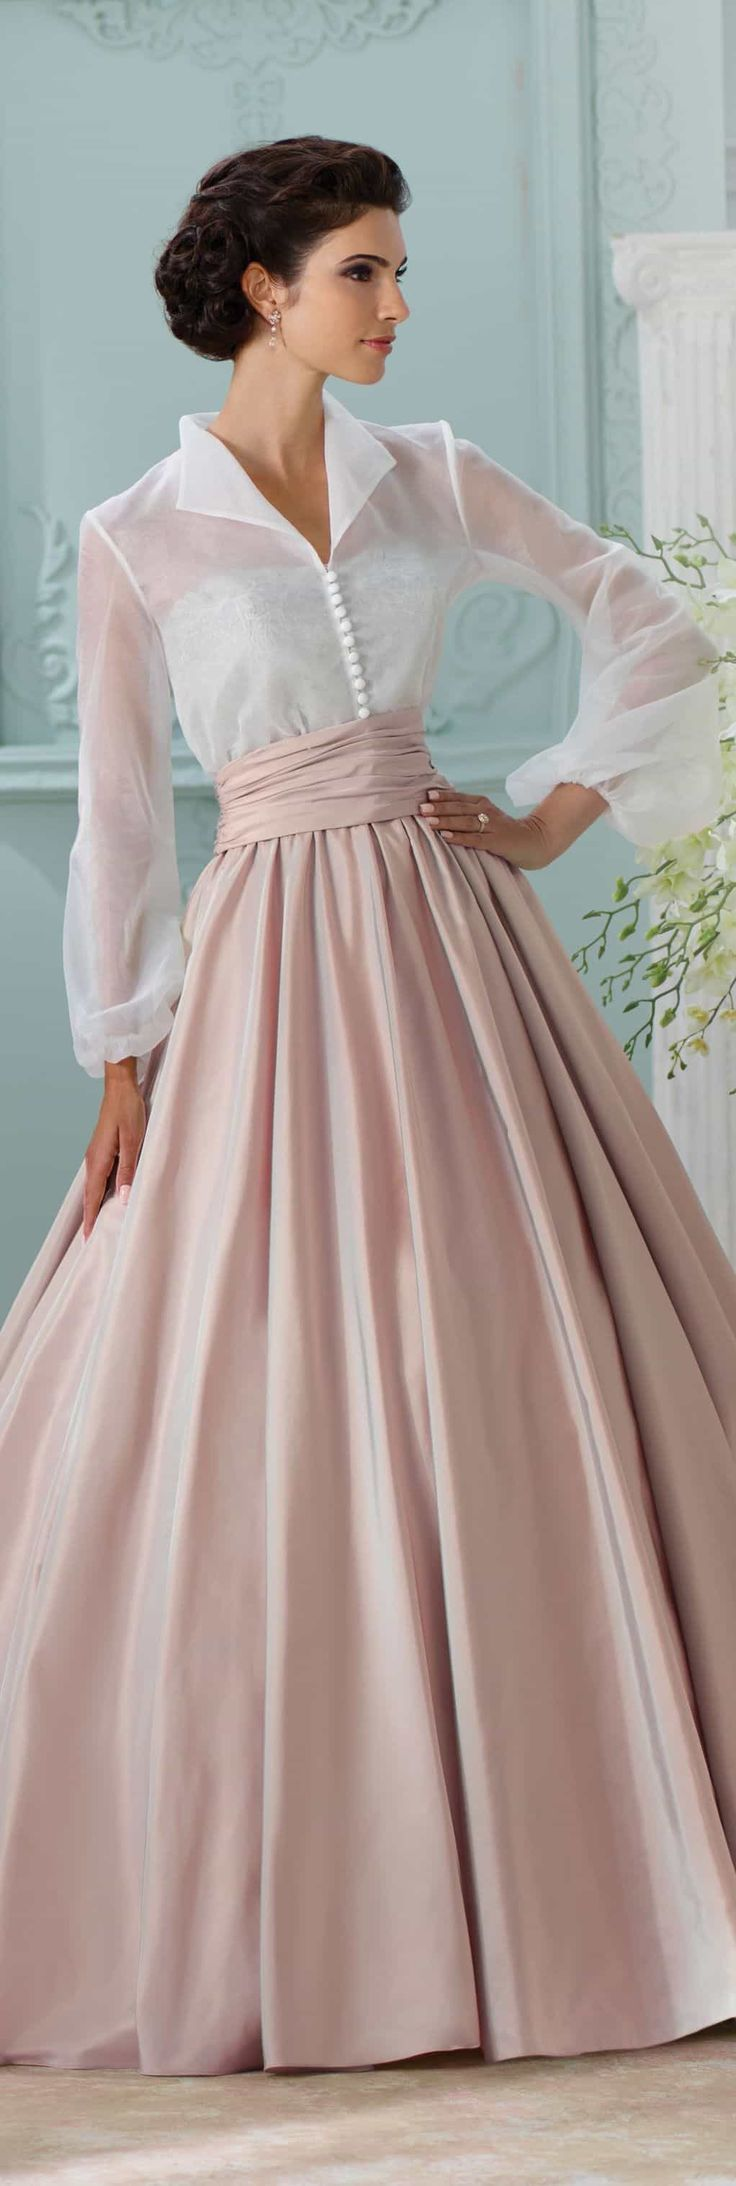 beautiful dresses classy 15 best outfits page 10 of 13 beautiful